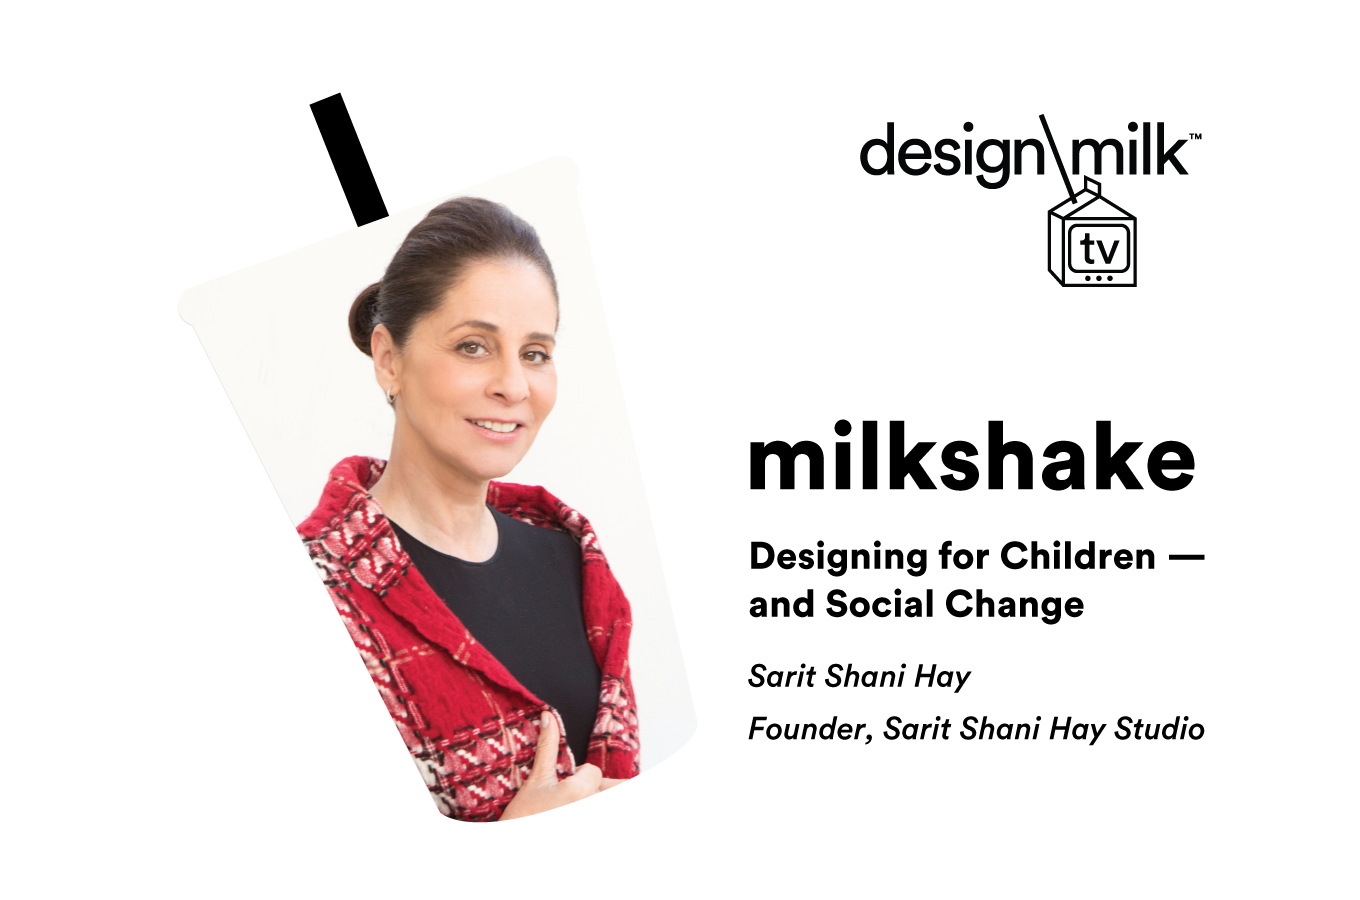 Sarit Shani Hay on Designing for Children + Social Change